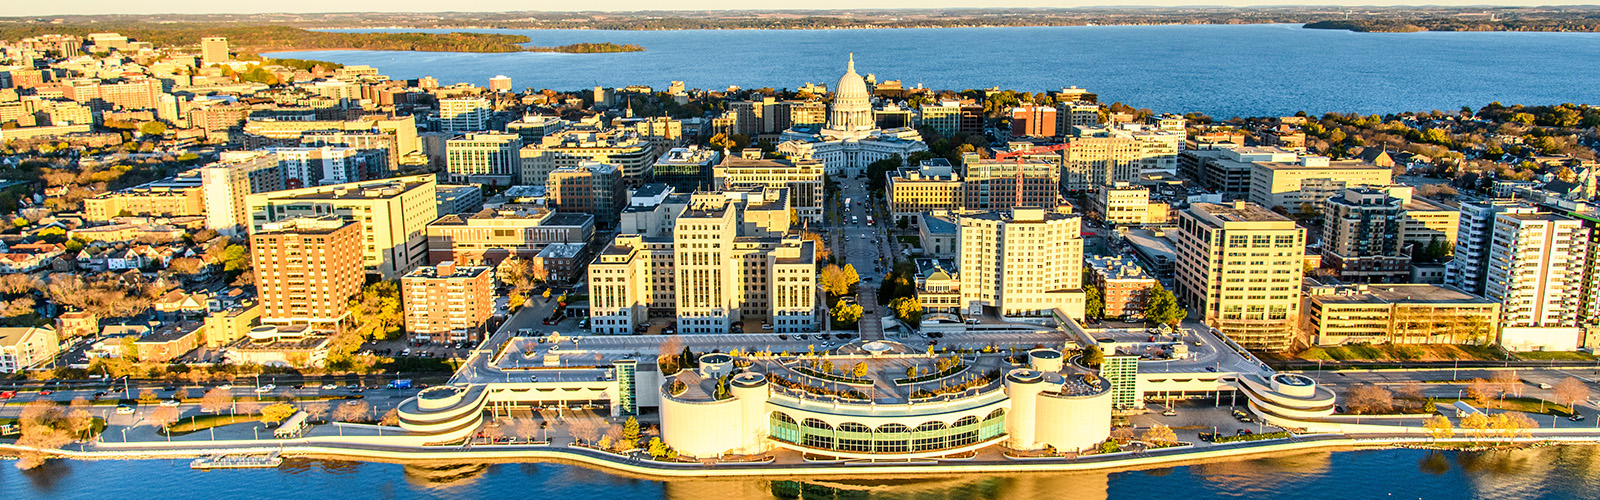 Lake Mendota and Lake Monona, along with the downtown Madison Isthmus and Wisconsin State Capitol, are pictured in an early morning aerial taken from a helicopter on Oct. 23, 2018. (Photo by Bryce Richter /UW-Madison)